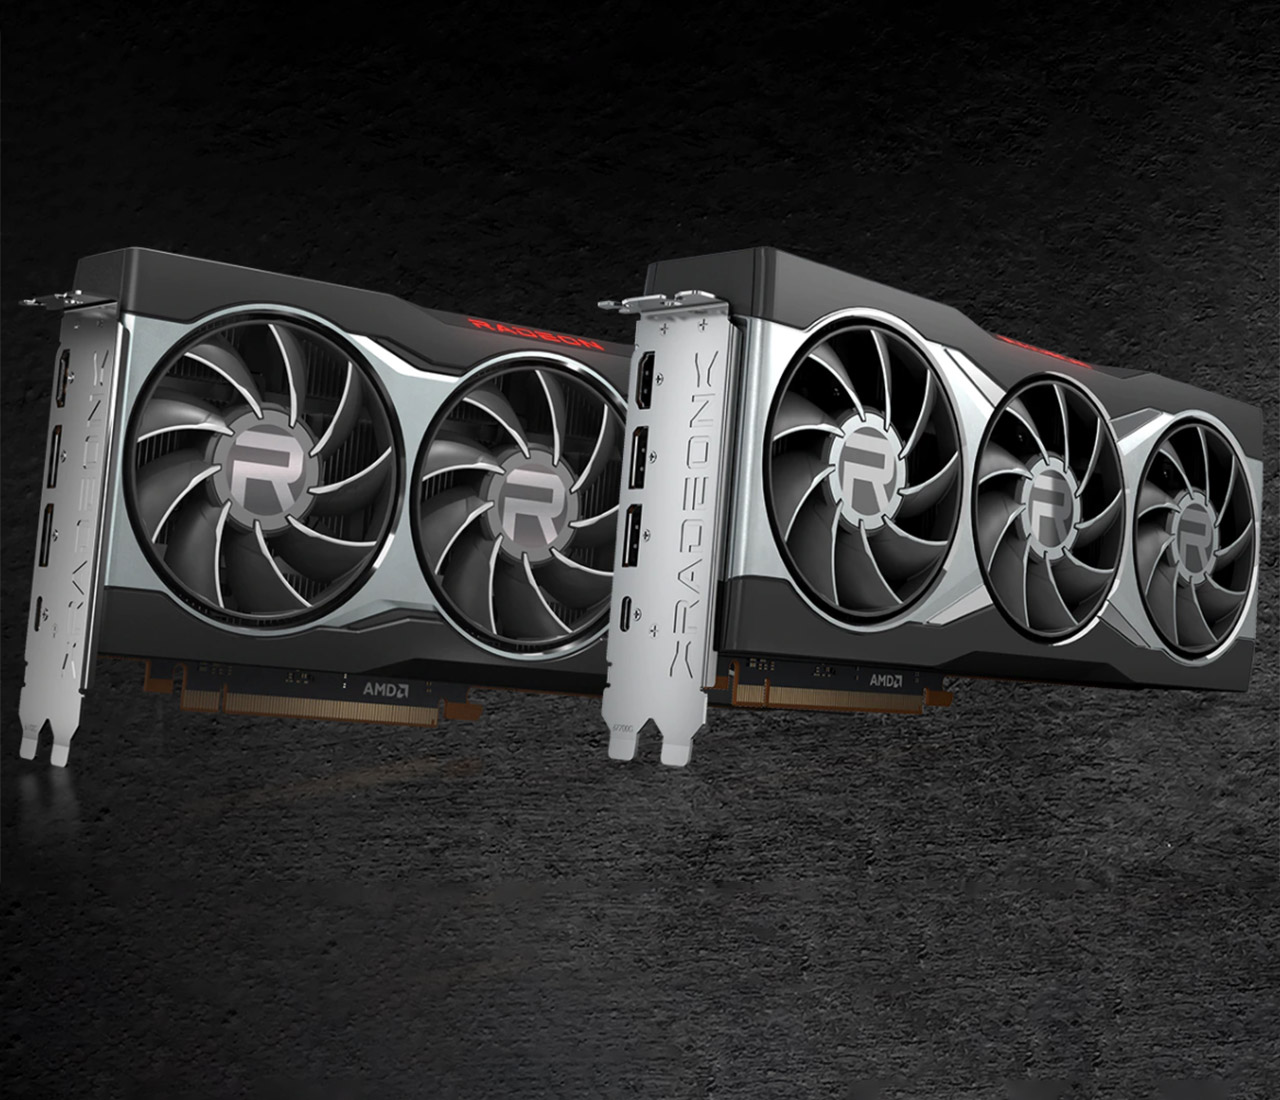 AMD Radeon RX 6800 Series Graphics Cards